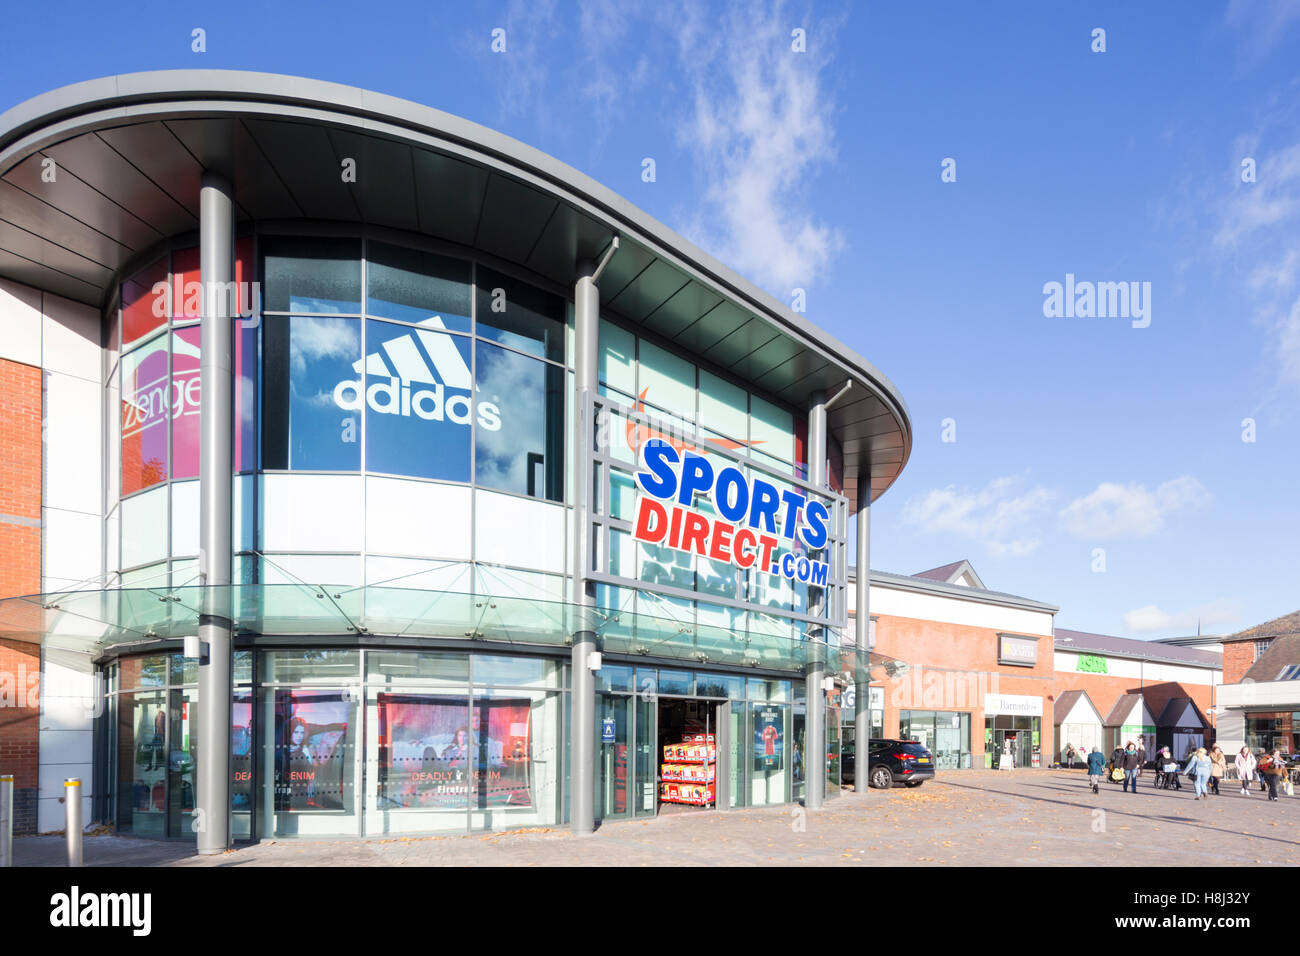 sports direct england stock photos sports direct england stock images alamy. Black Bedroom Furniture Sets. Home Design Ideas